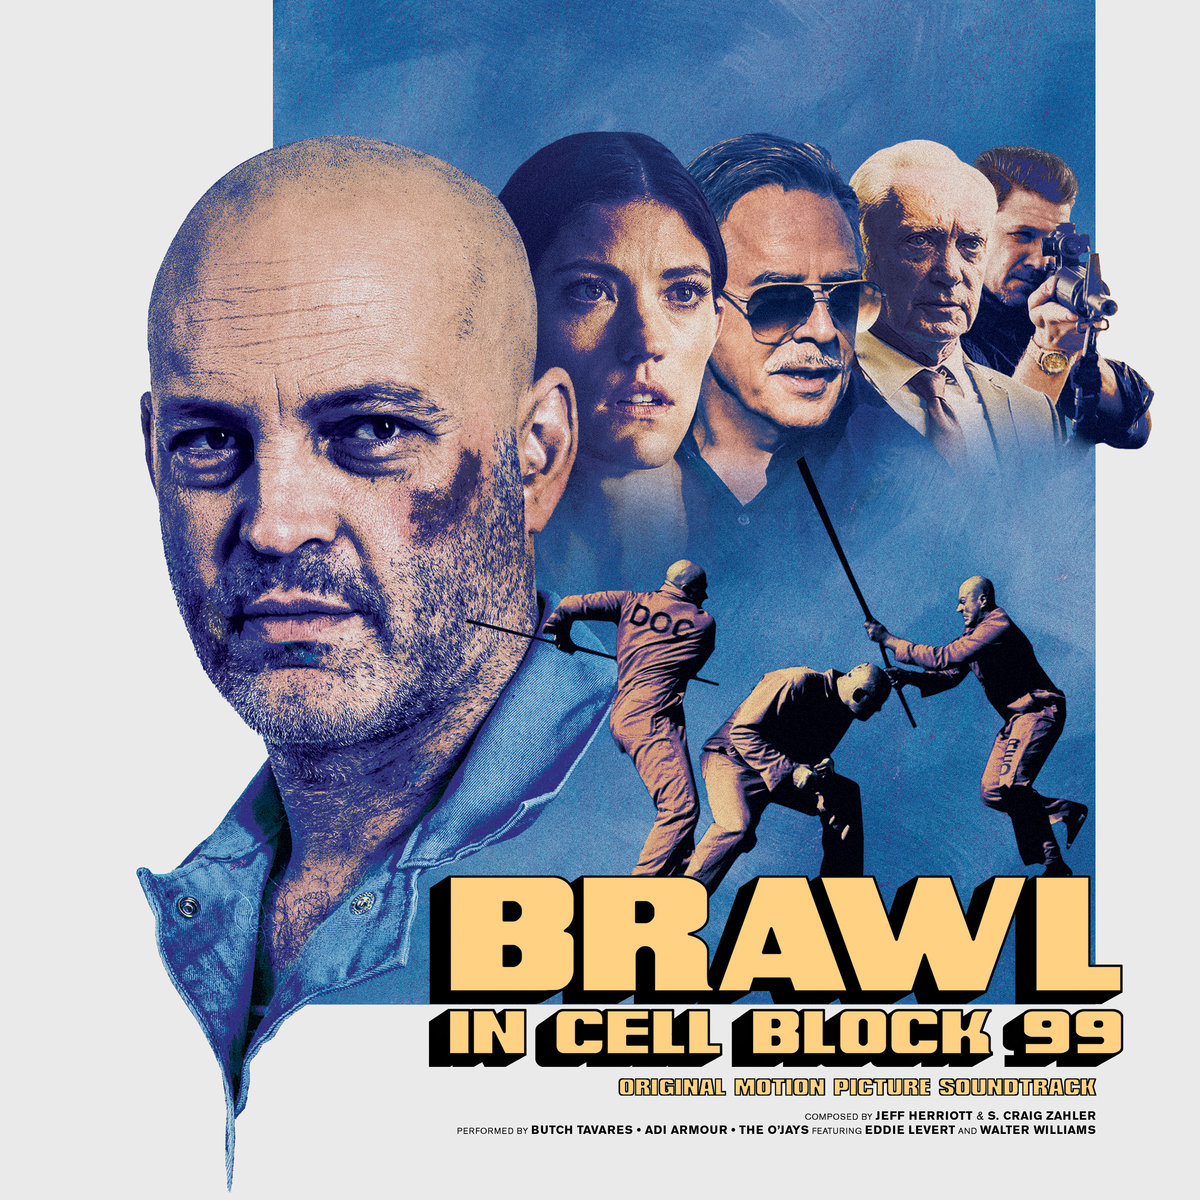 Brawl In Cell Block 99 Original Motion Picture Soundtrack